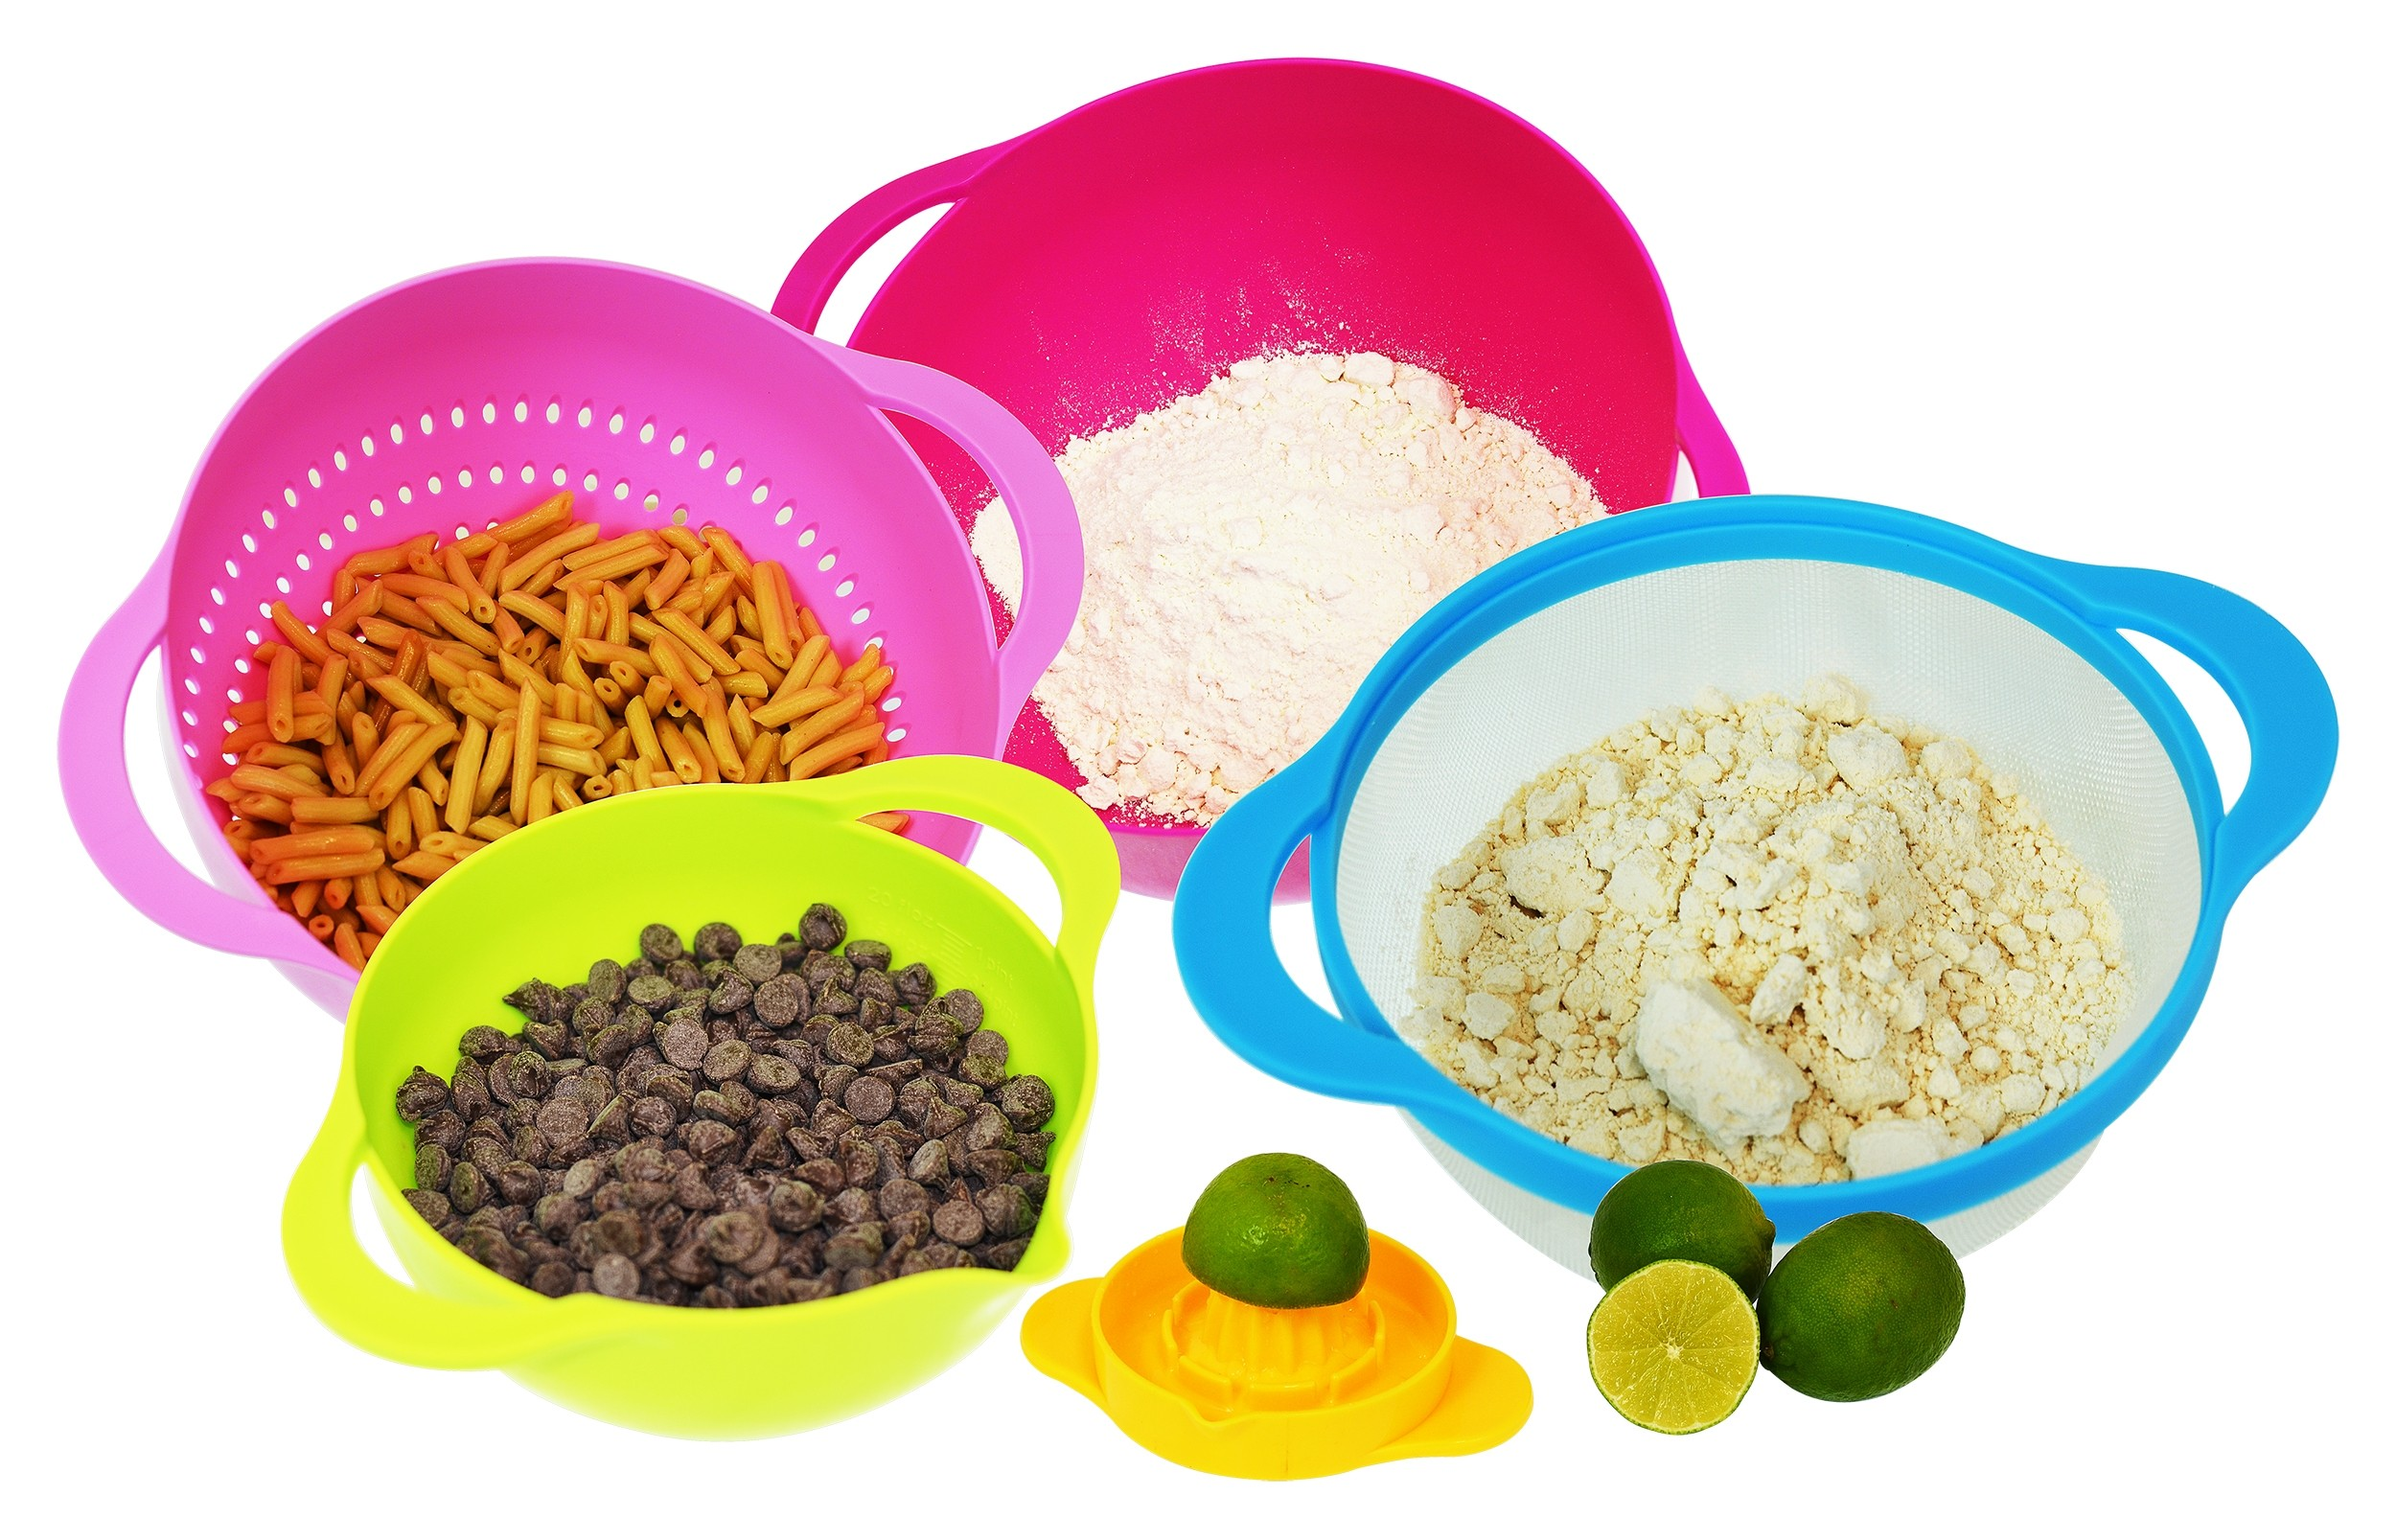 5 Piece Nesting Bowl Cooking Set